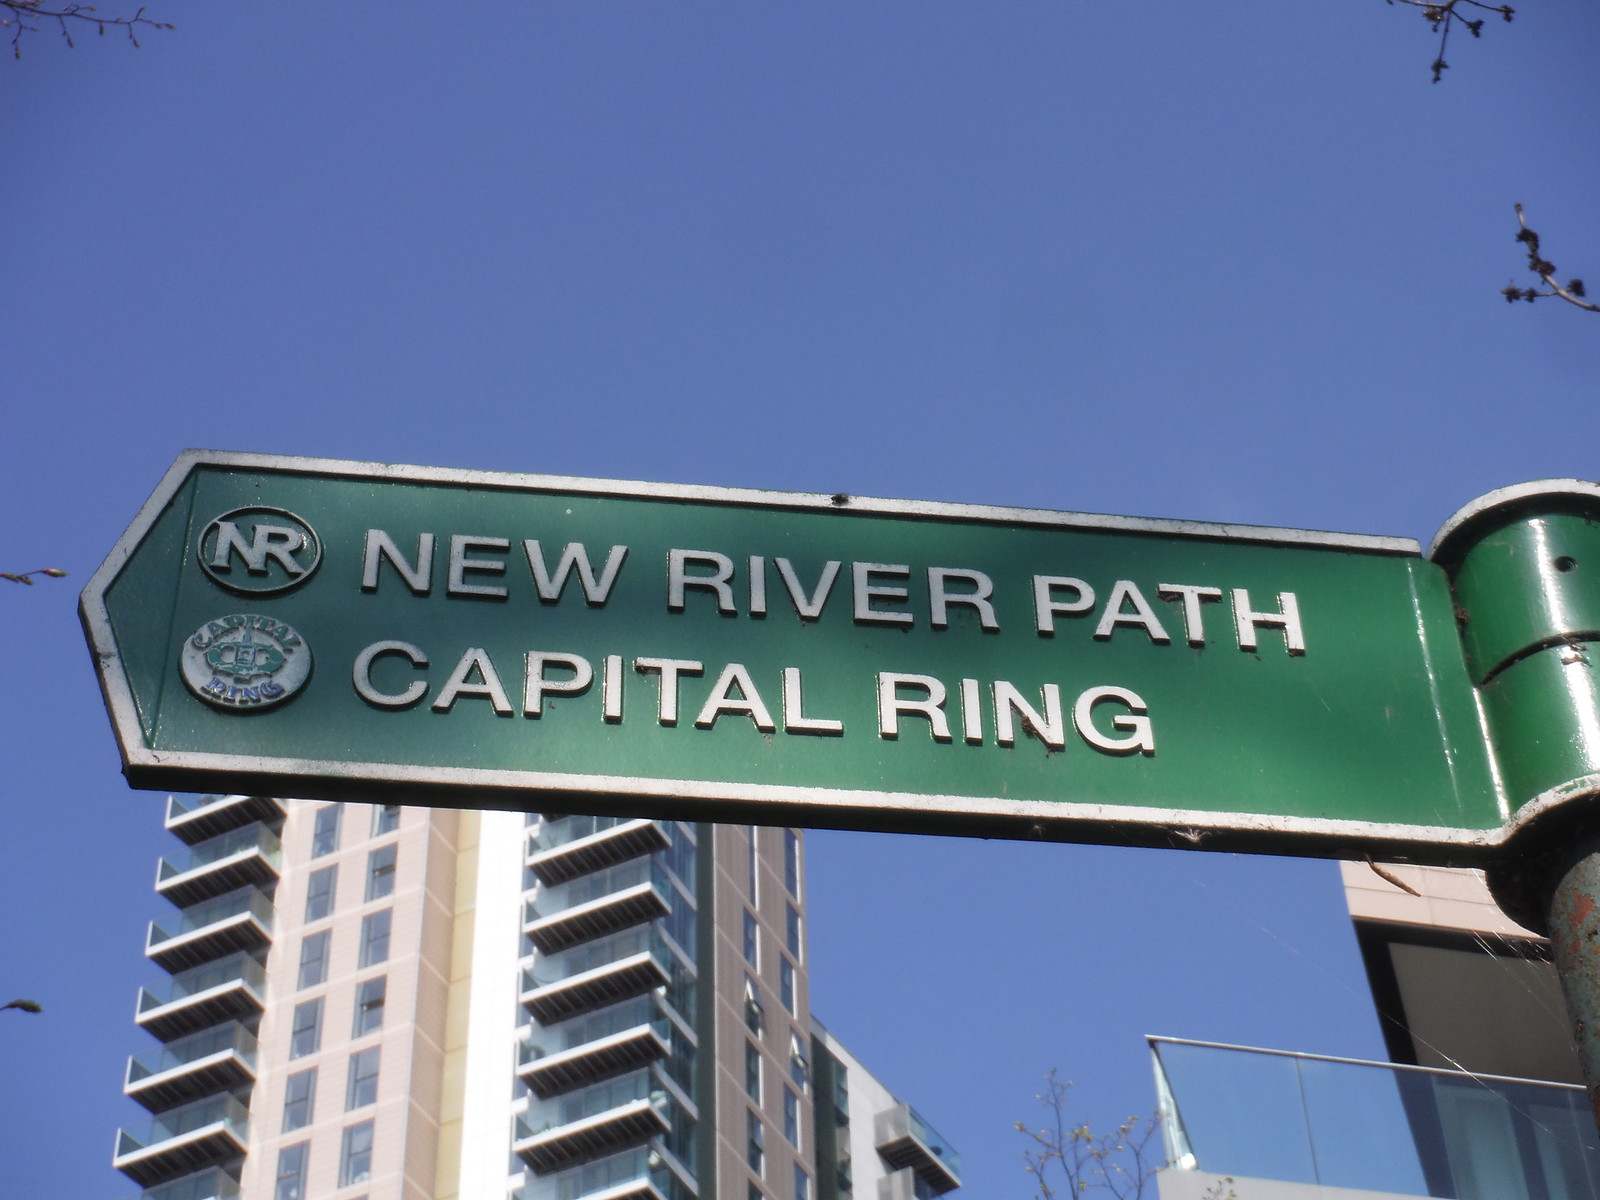 New River Path and Capital Ring Signpost SWC Short Walk 26 - Woodberry Wetlands (Stoke Newington Reservoirs)